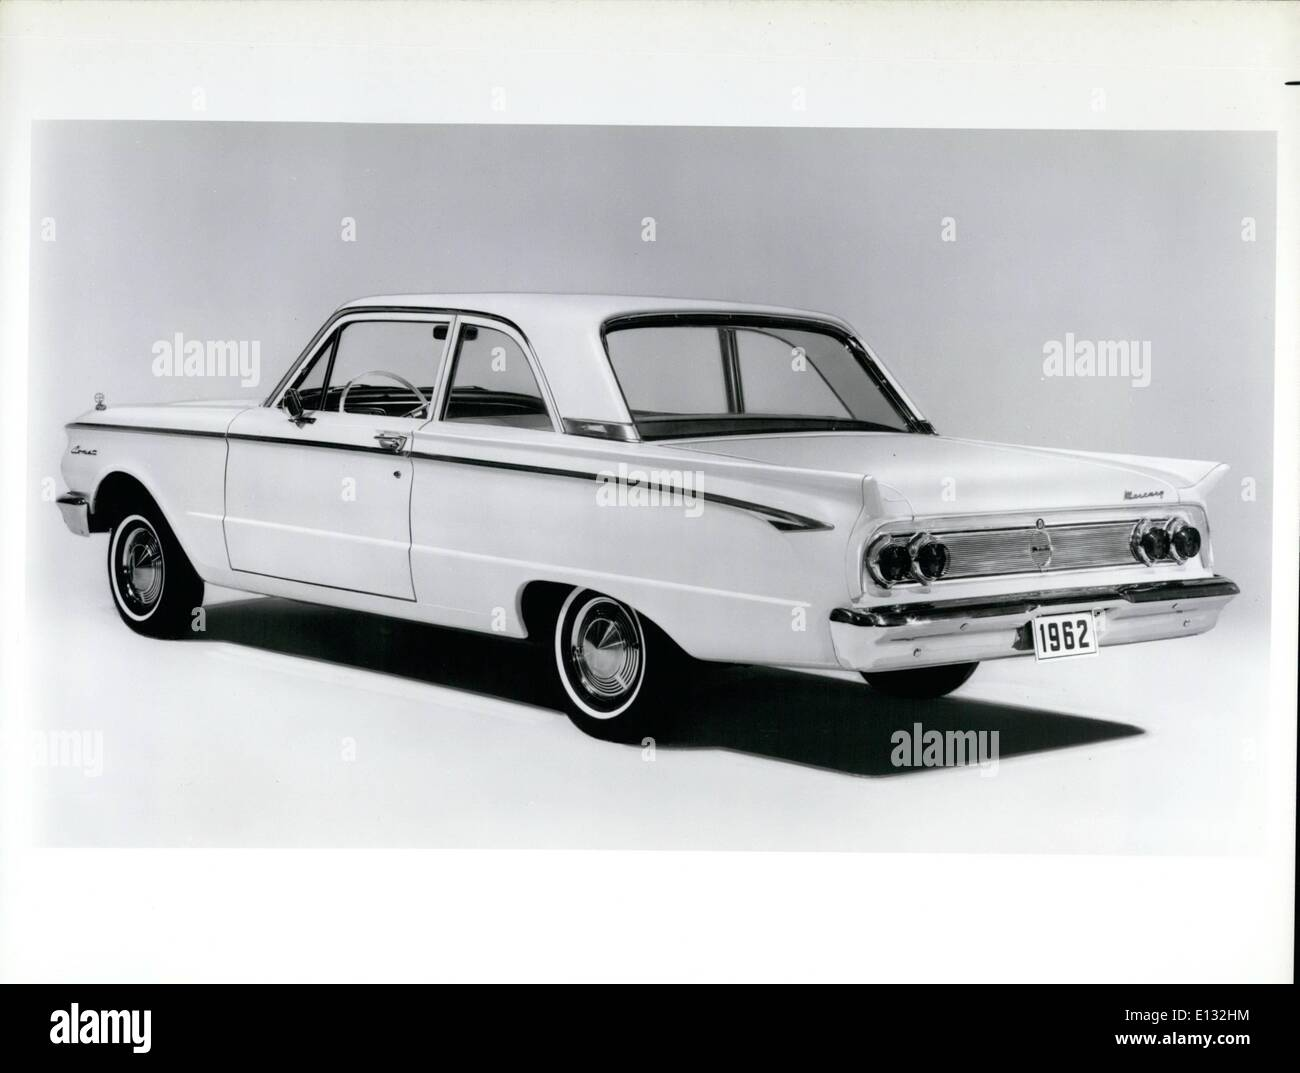 Feb. 26, 2012 - The Mercury Comet for 1962 has significant rear-end styling changes but continues to offer the same features that have made it a strong competitor in the compact market. The Comet name has been altered to reflect its membership in the broadened Mercury line for 1962. Rear fins have been tapered down and new taillights are set in pairs on a bright metal applique. A new spear molding distinguishes the side appearance. Sound deadening material has been nearly doubled to isolate the driver and passenger compartment - Stock Image